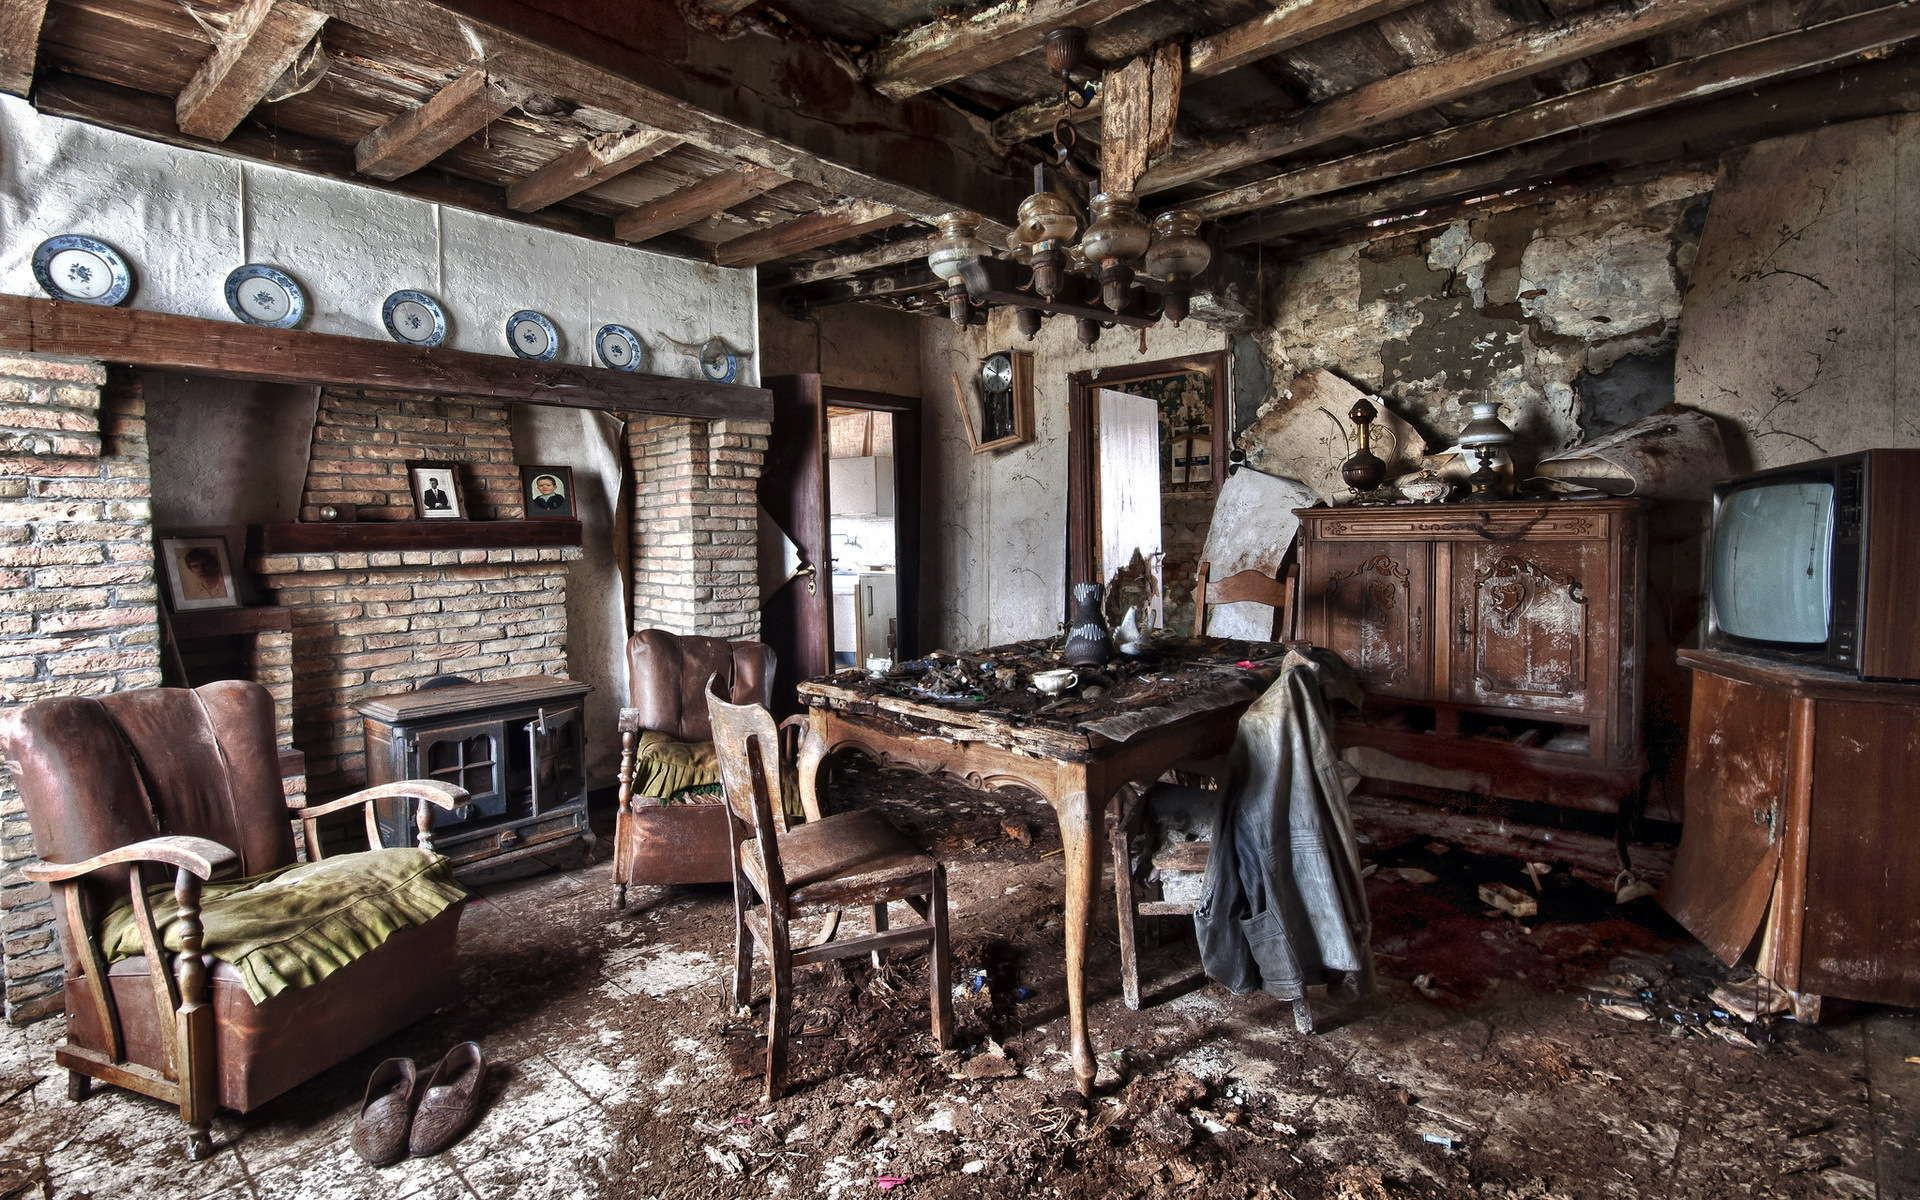 Interior Old Table Armchair Room Design Ruins Apocalyptic